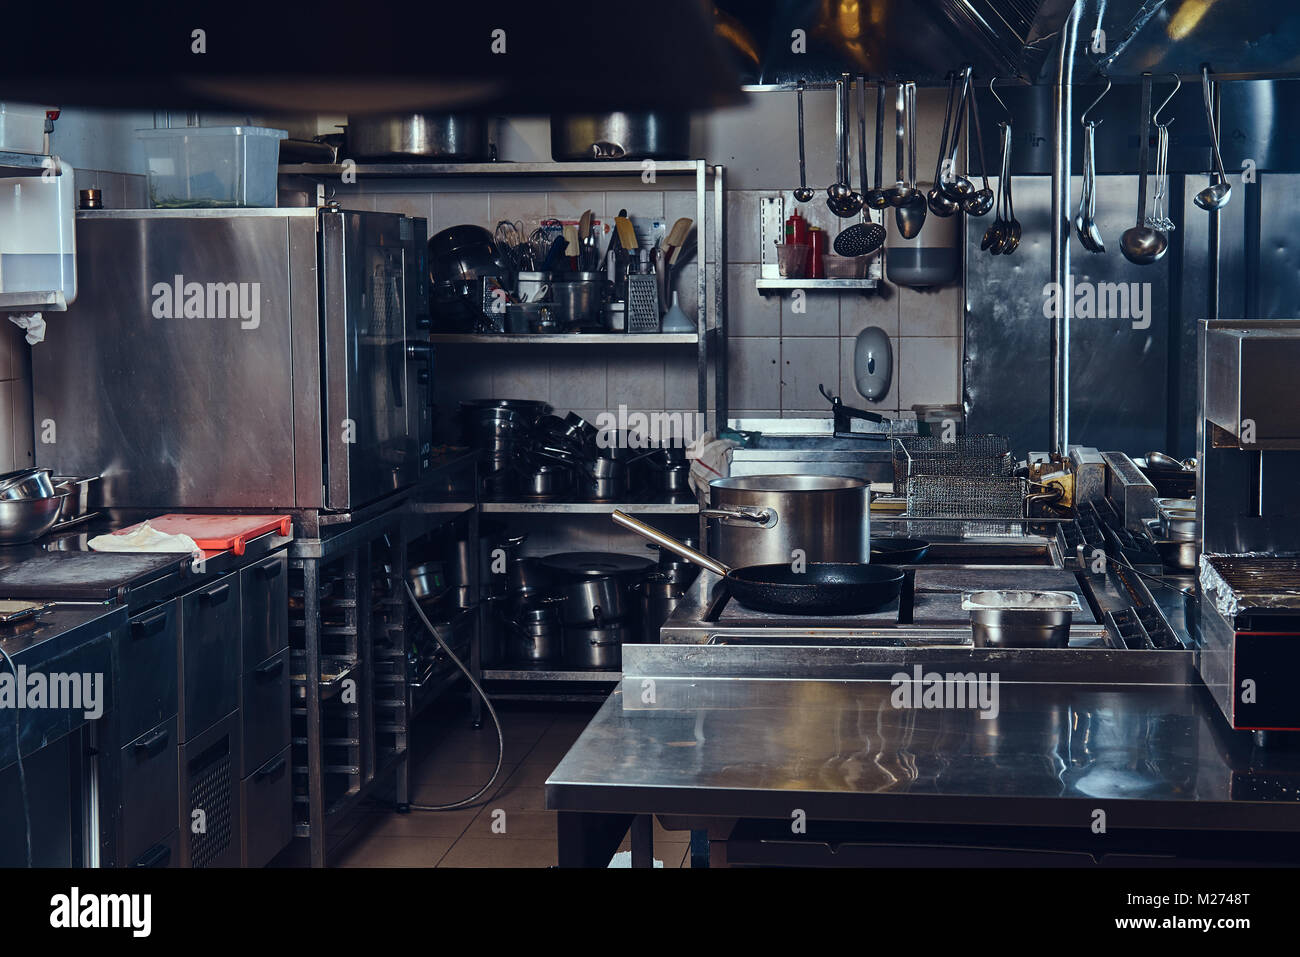 Professional stainless steel kitchen. Stock Photo